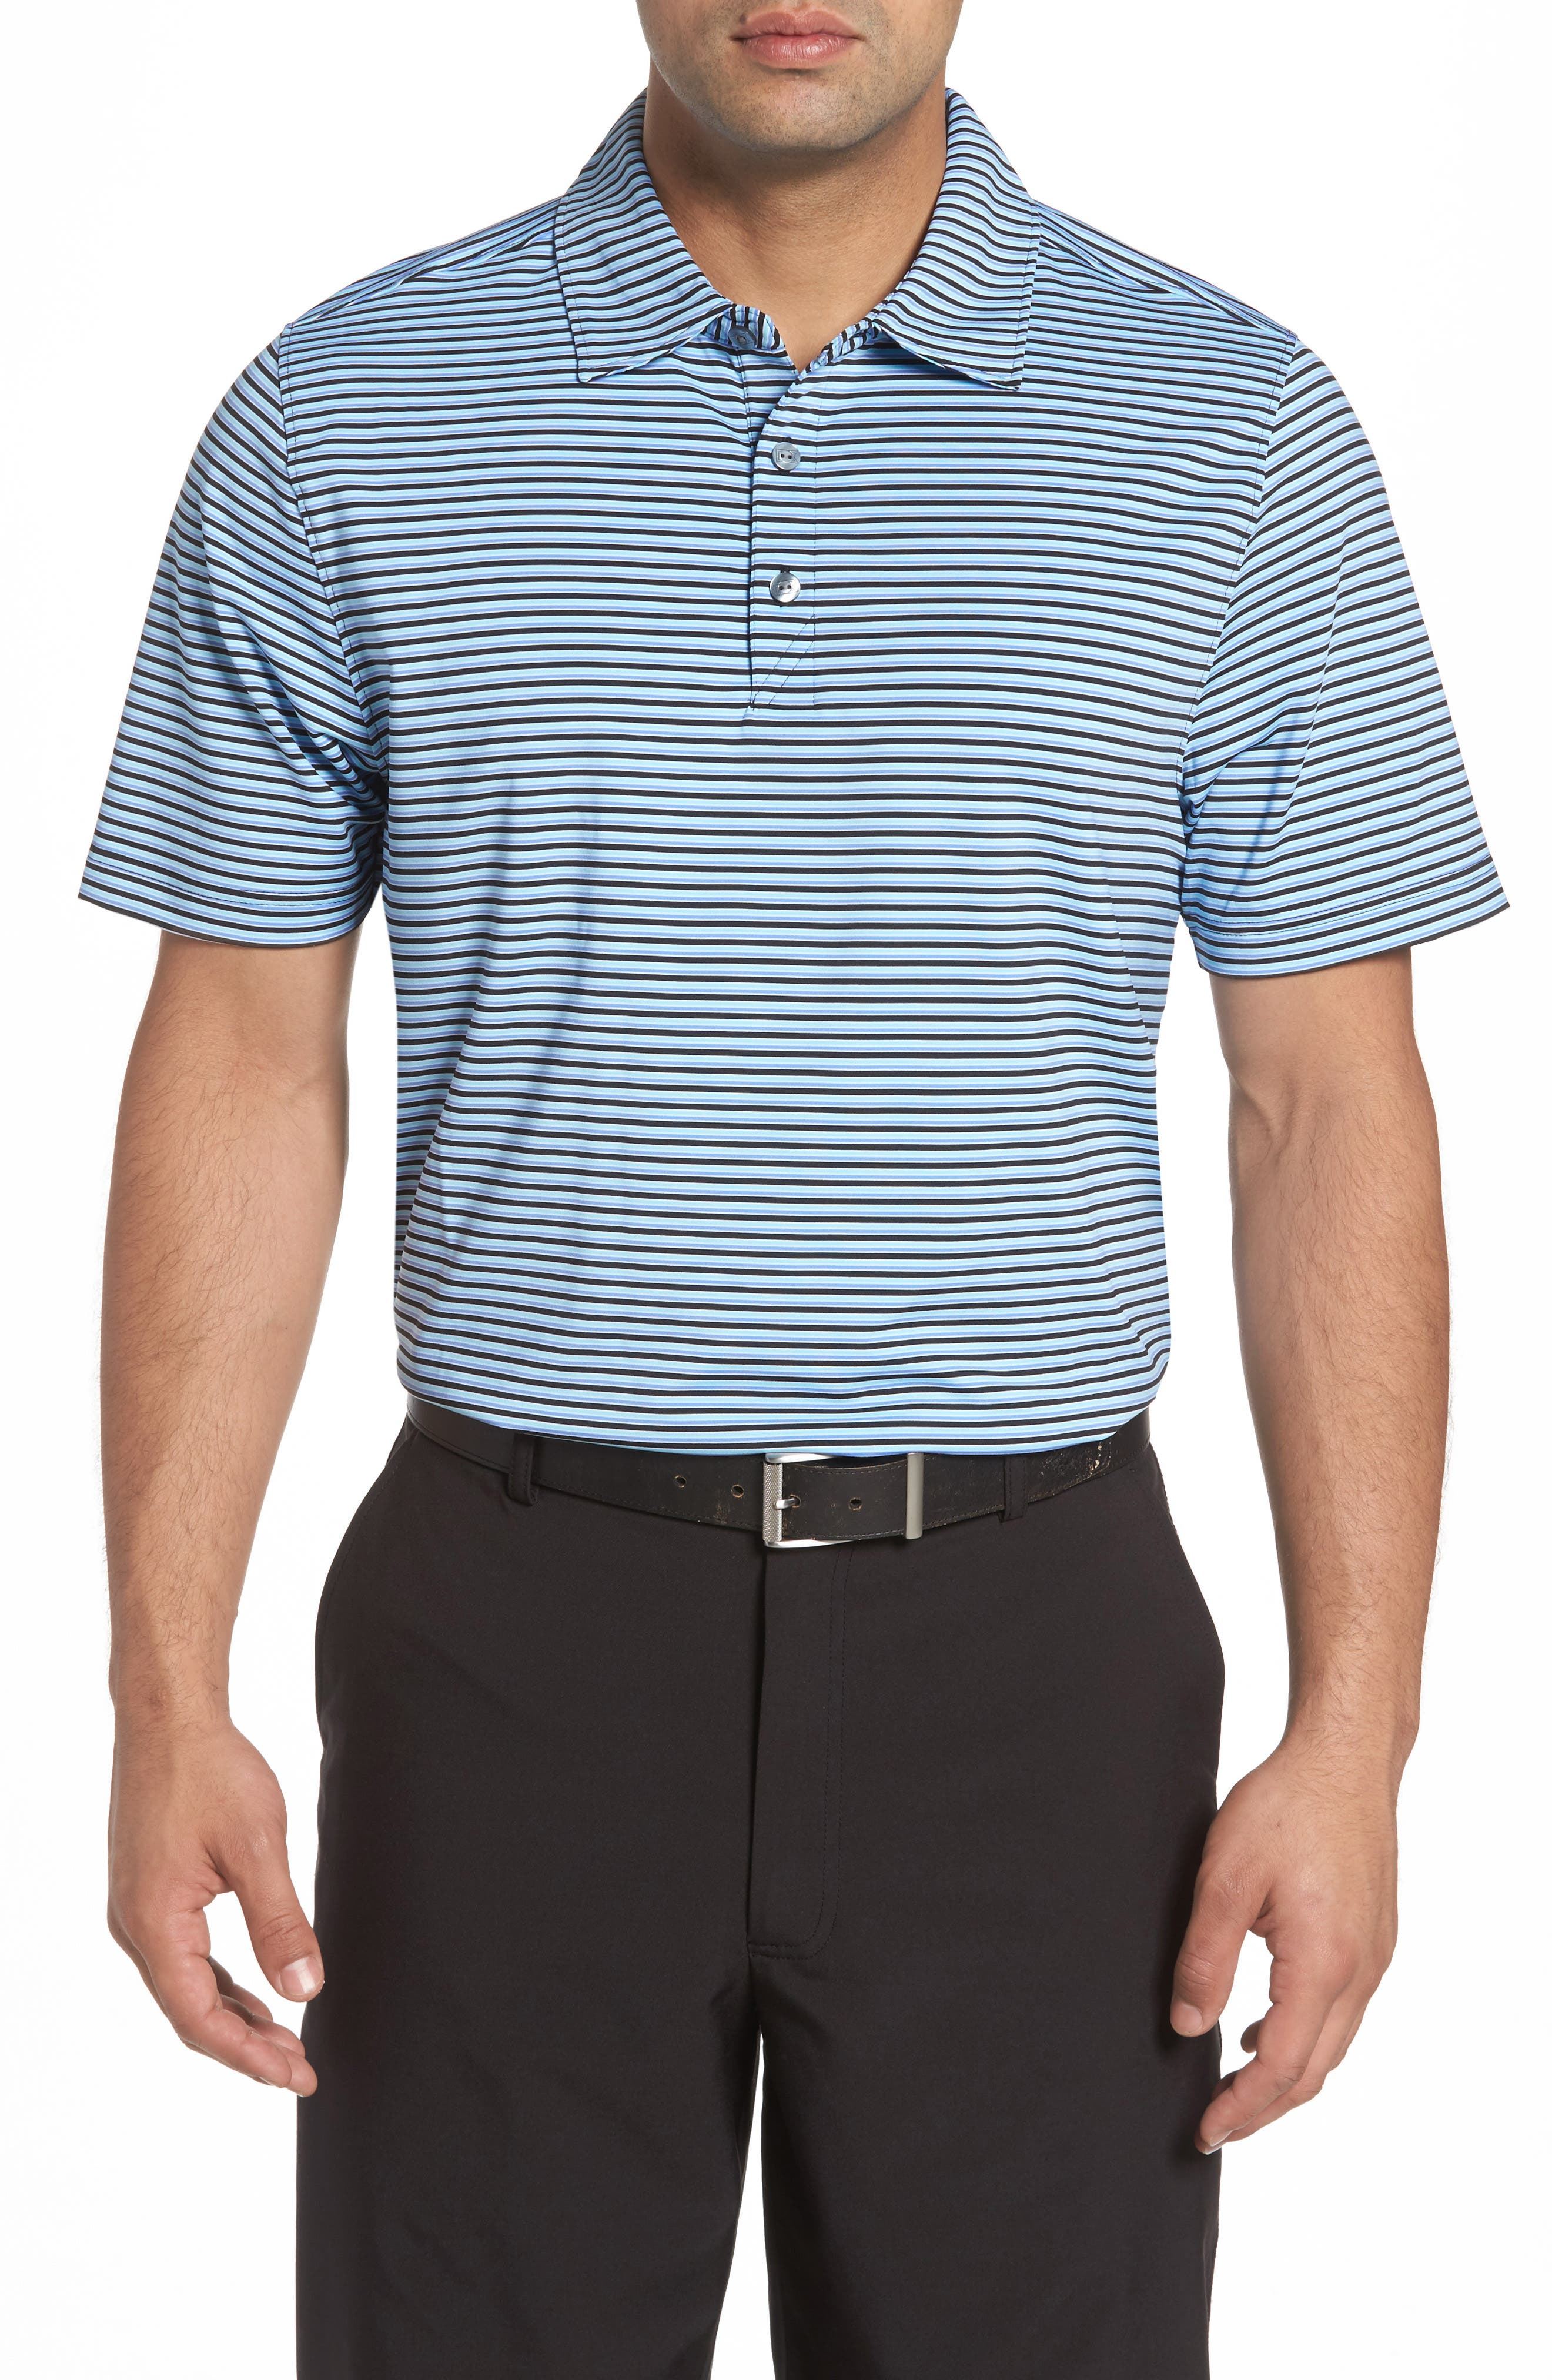 Main Image - Cutter & Buck Division Stripe Jersey Polo